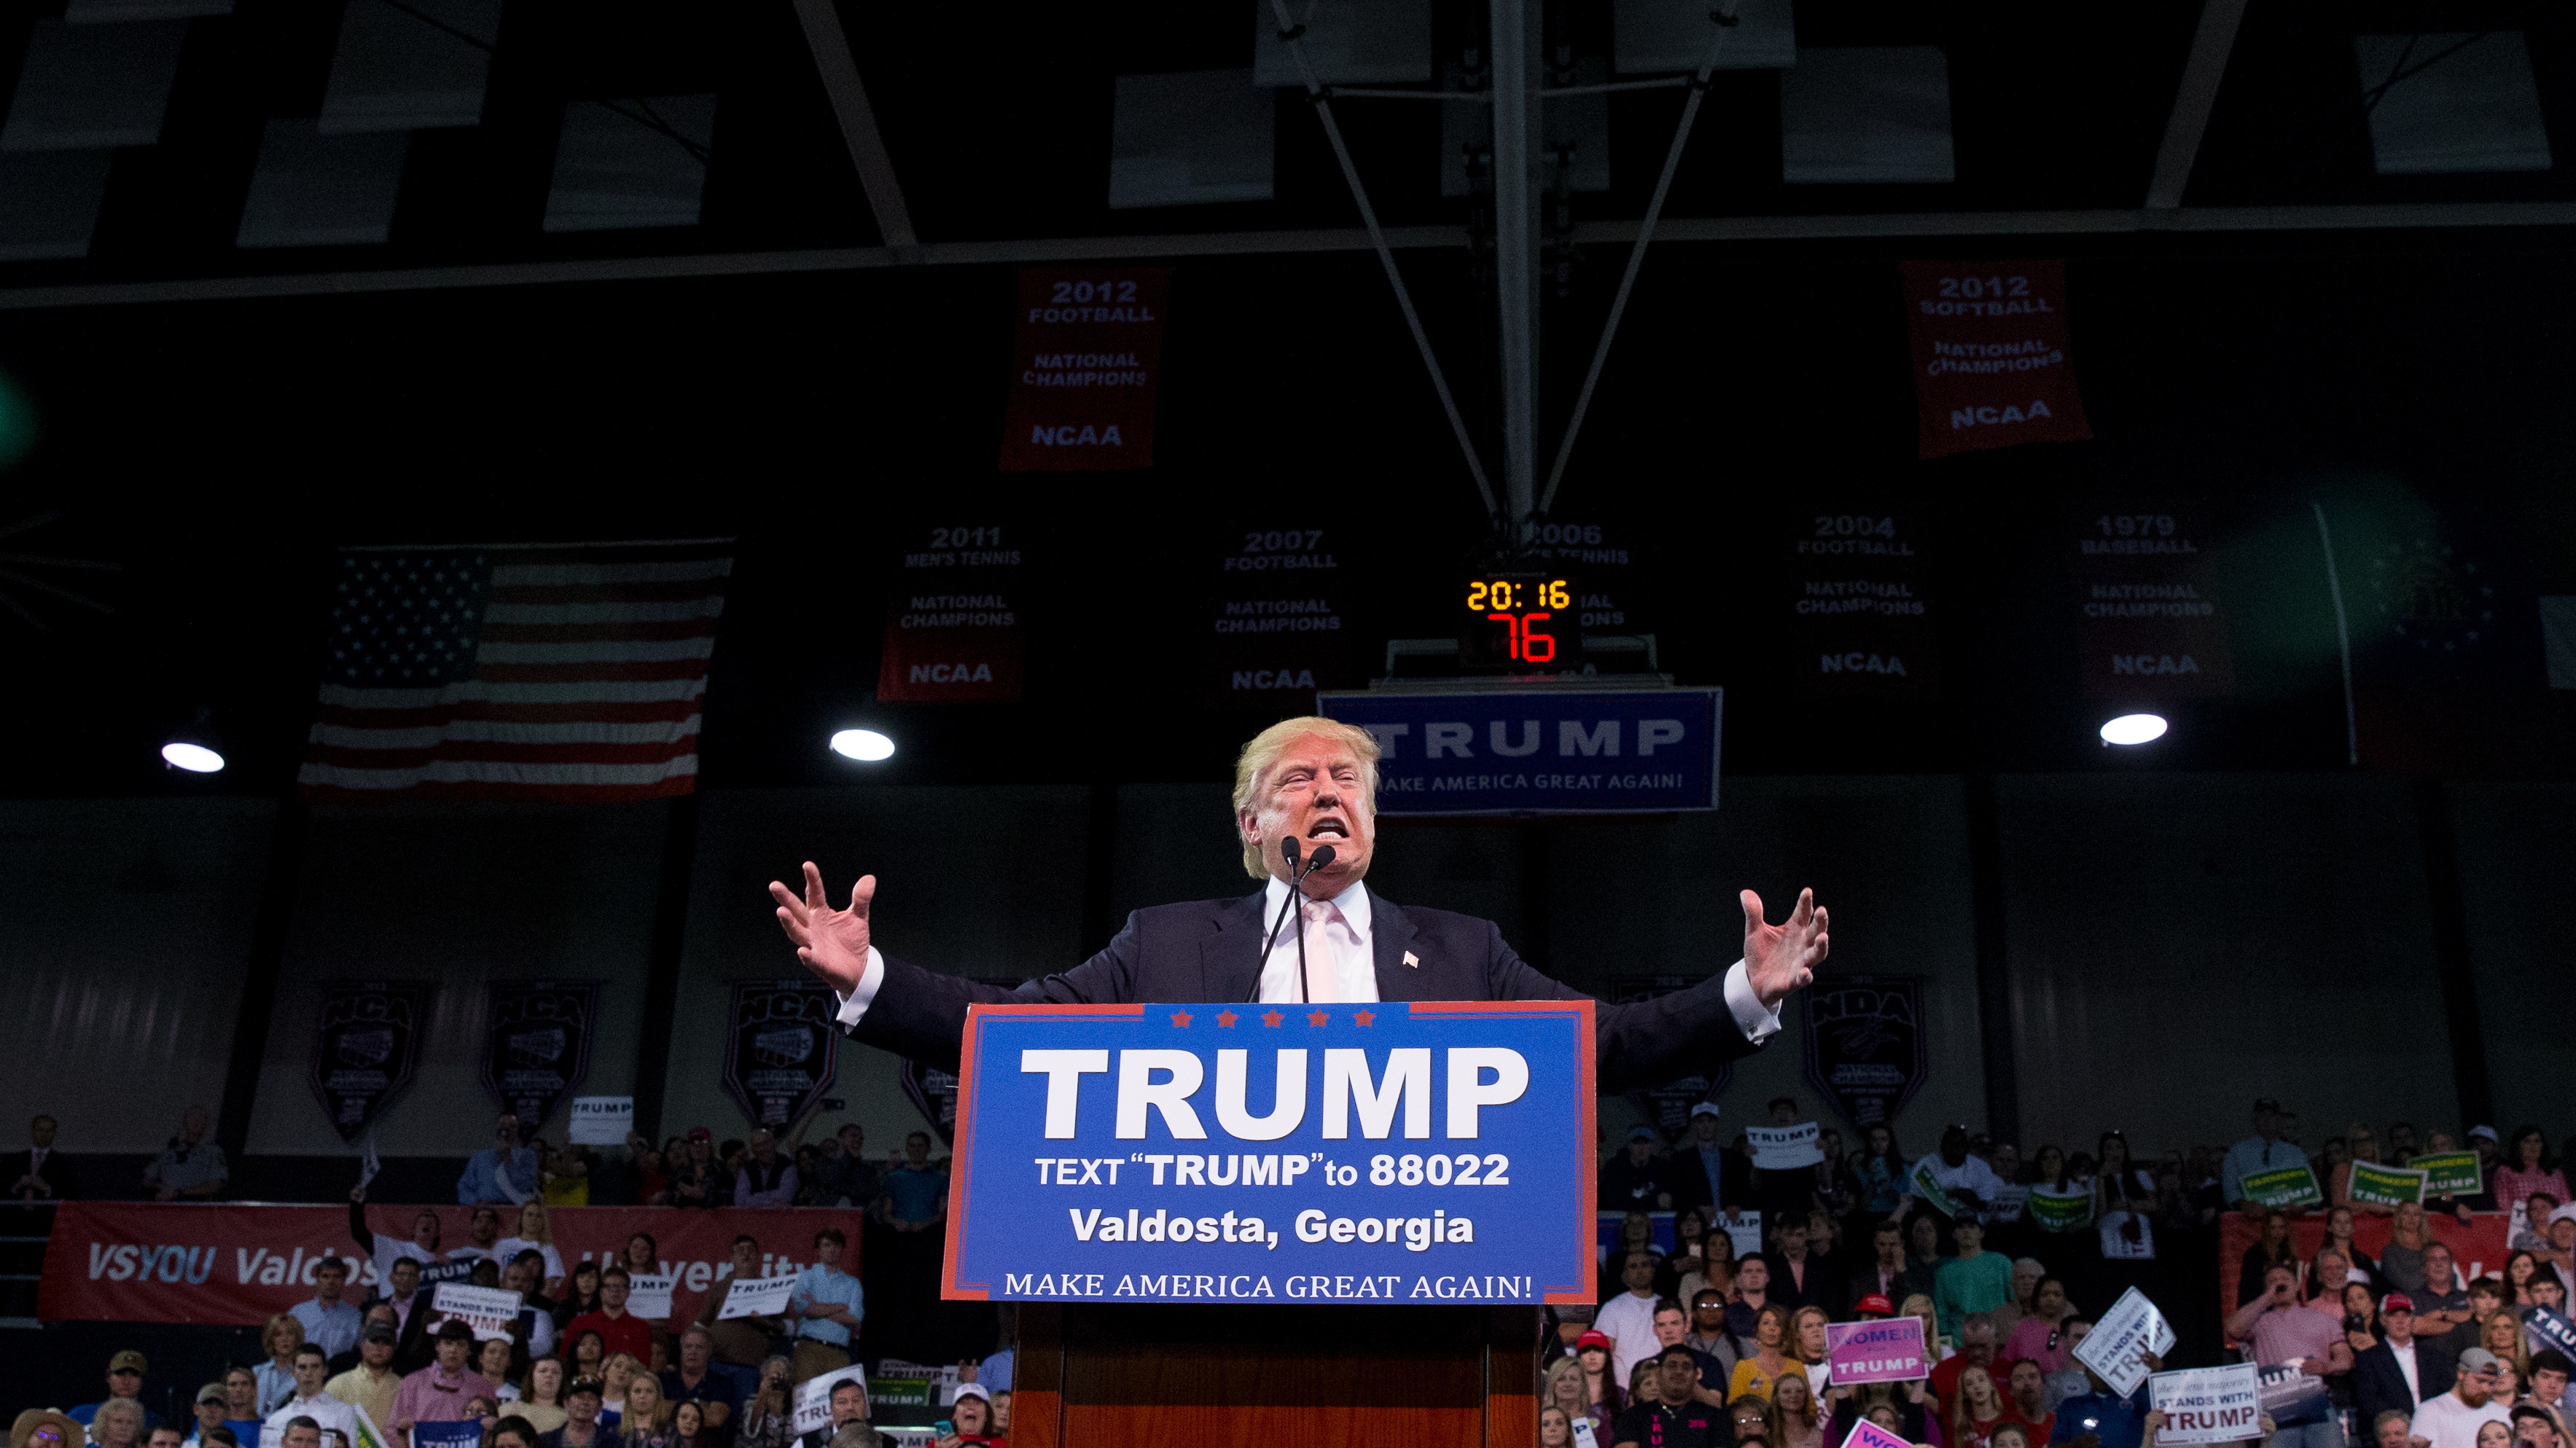 Journalists Struggle To Describe Trump's Racially Charged Rhetoric